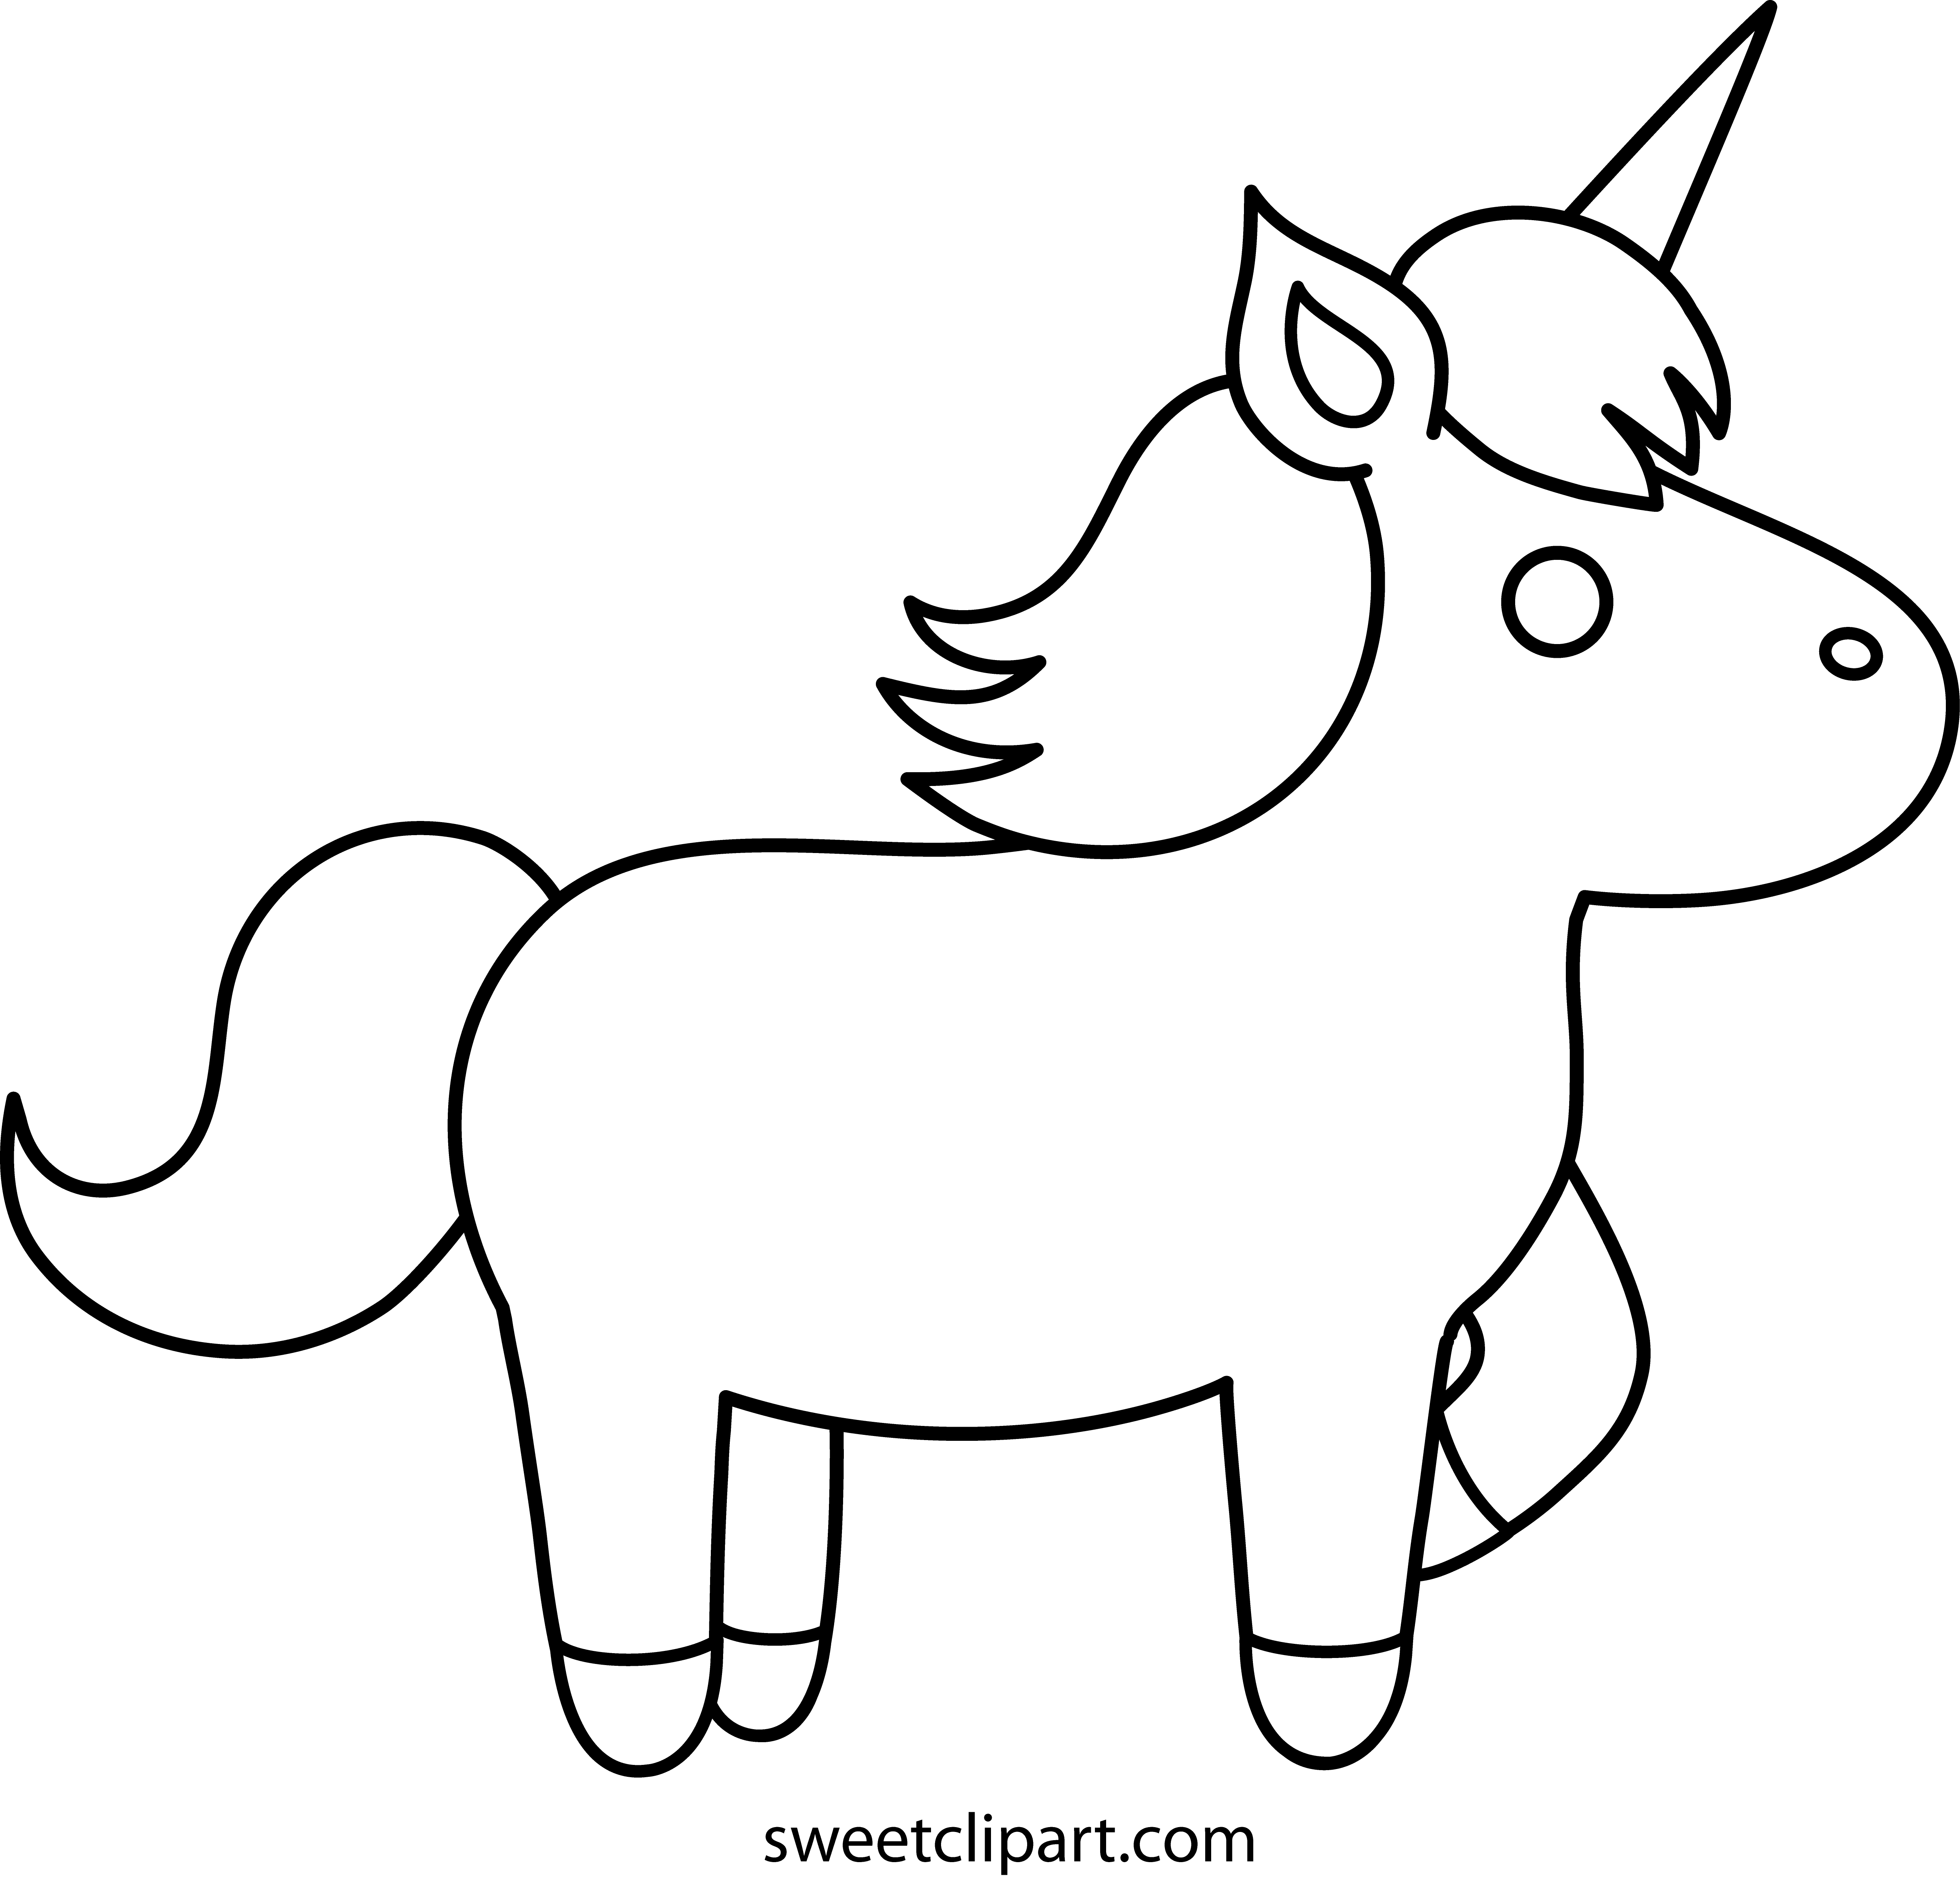 Easy unicorn coloring pages. G drawing simple png free